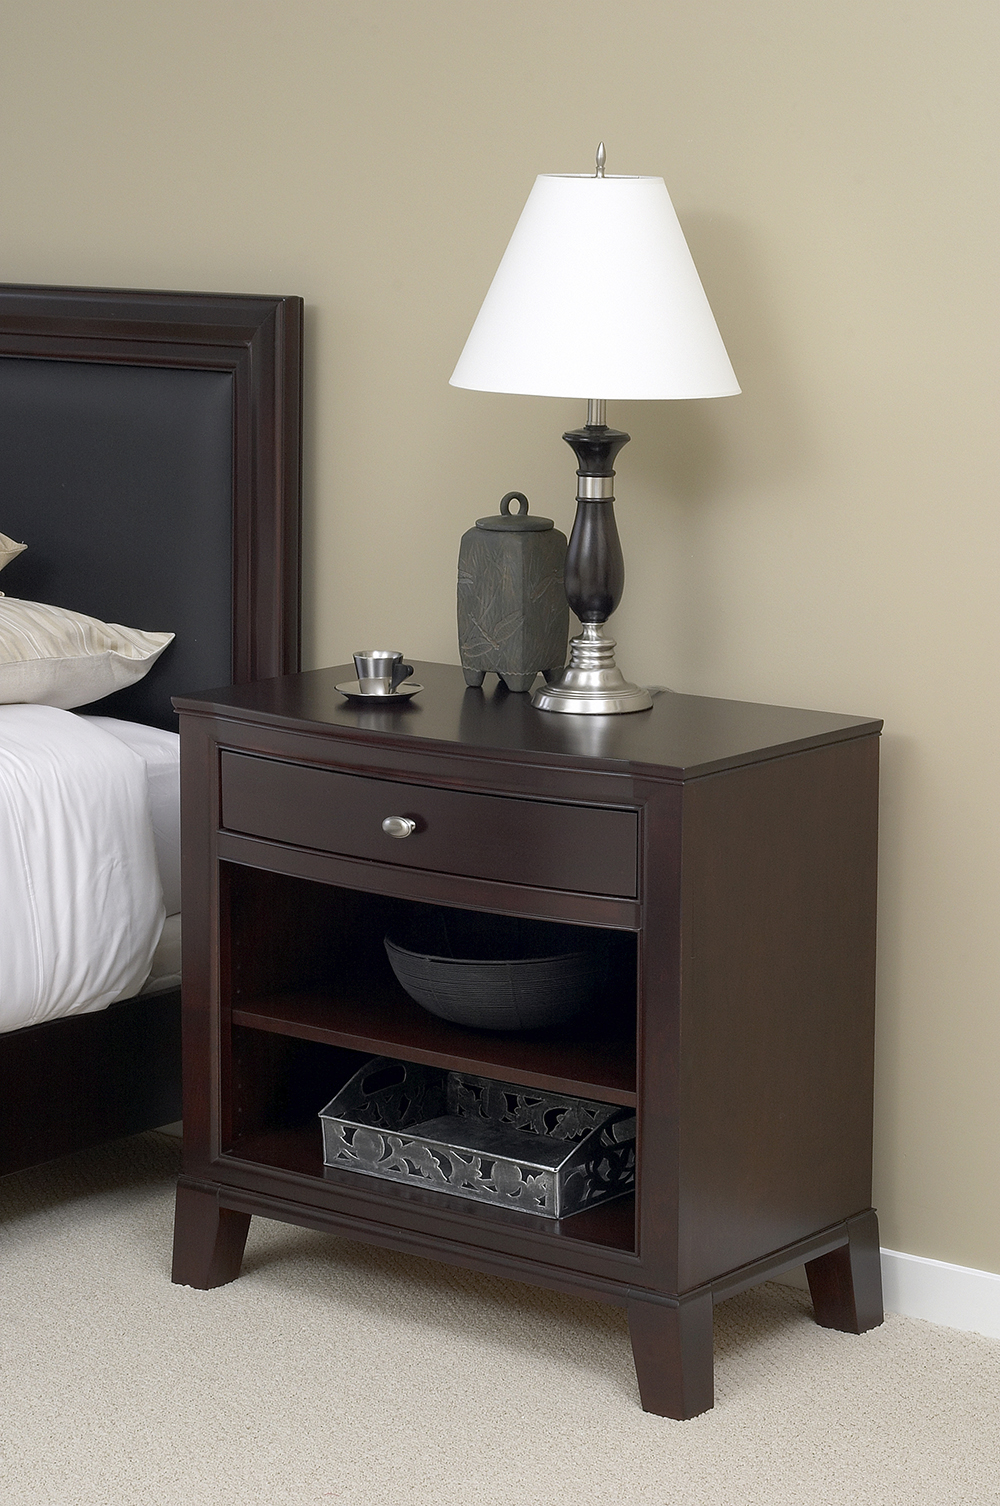 3013 bedside table